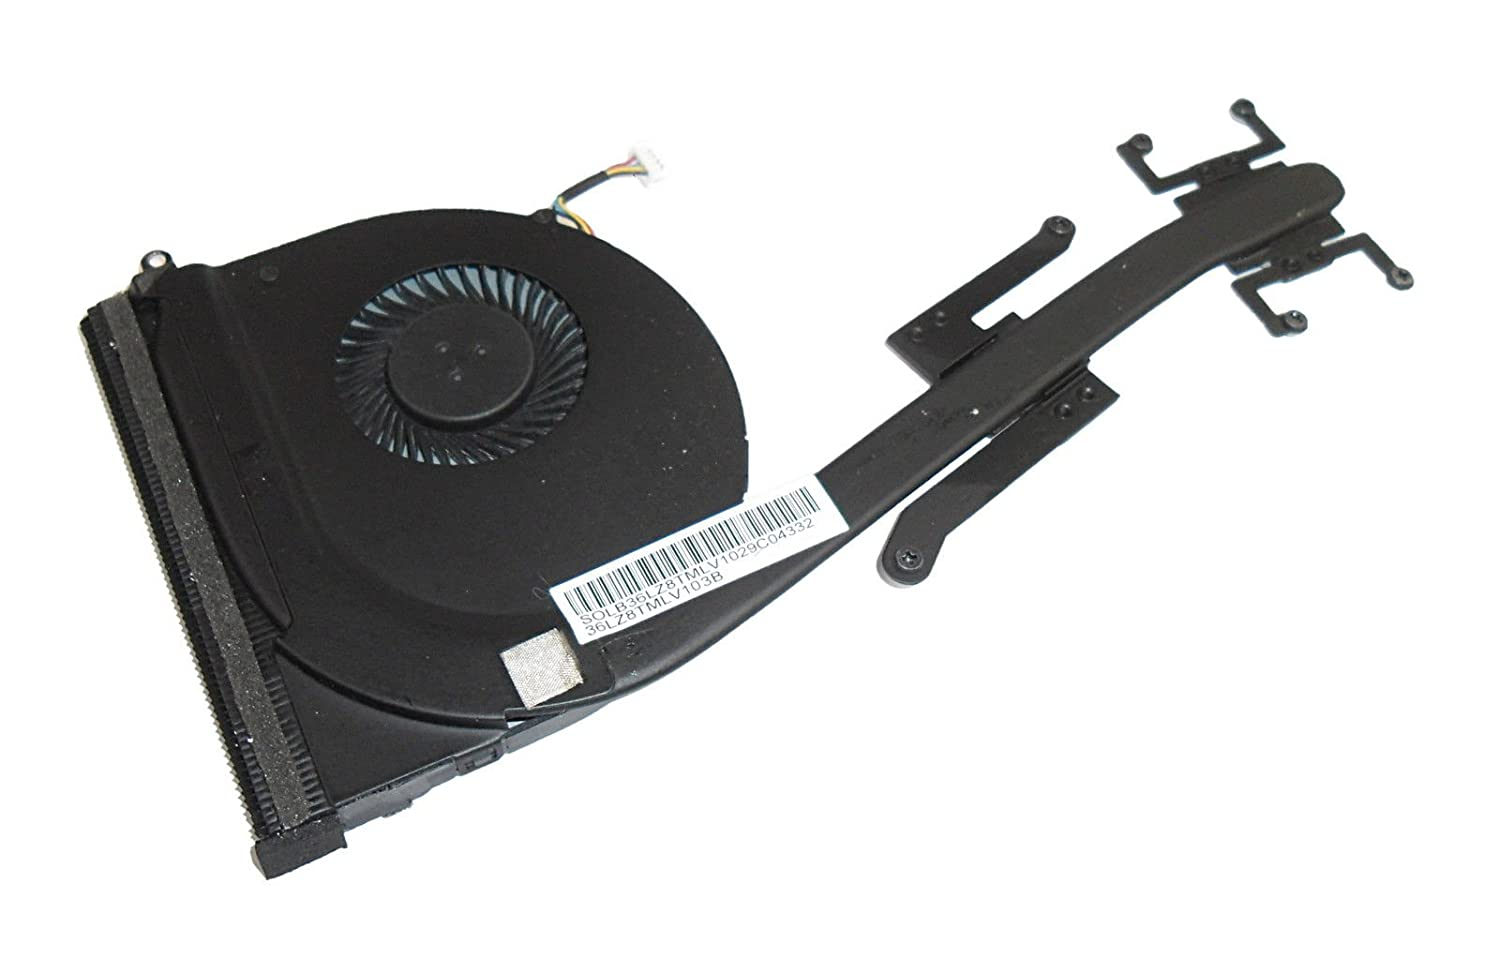 New Laptop CPU Cooling Fan with heatsink for IBM Lenovo Ideapad U410 P/N: 36LZ8TMLV103B, 36LZ8TMLV00